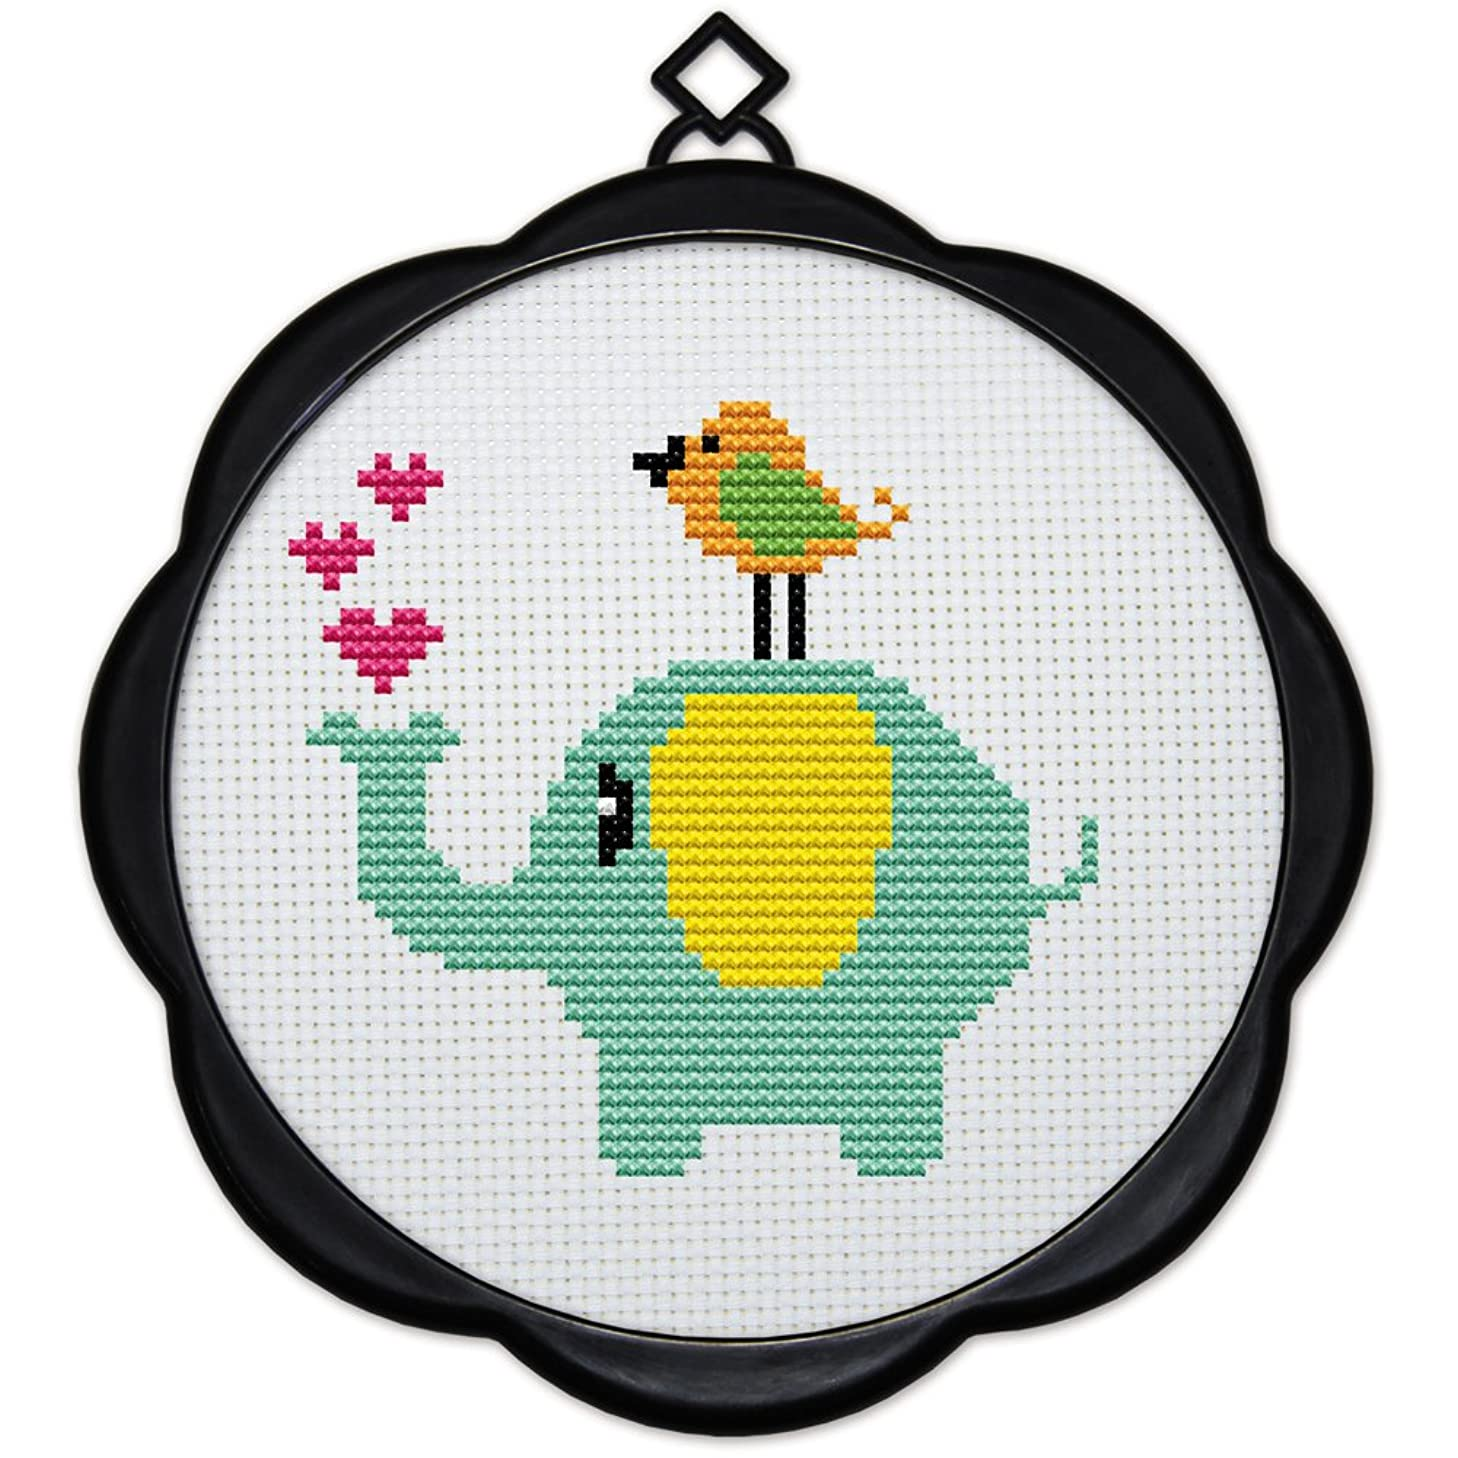 Full Range of Embroidery Starter Kits Stamped Cross Stitch Kits Beginners for DIY Embroidery (Multiple Pattern Designs) - Birds and Elephants